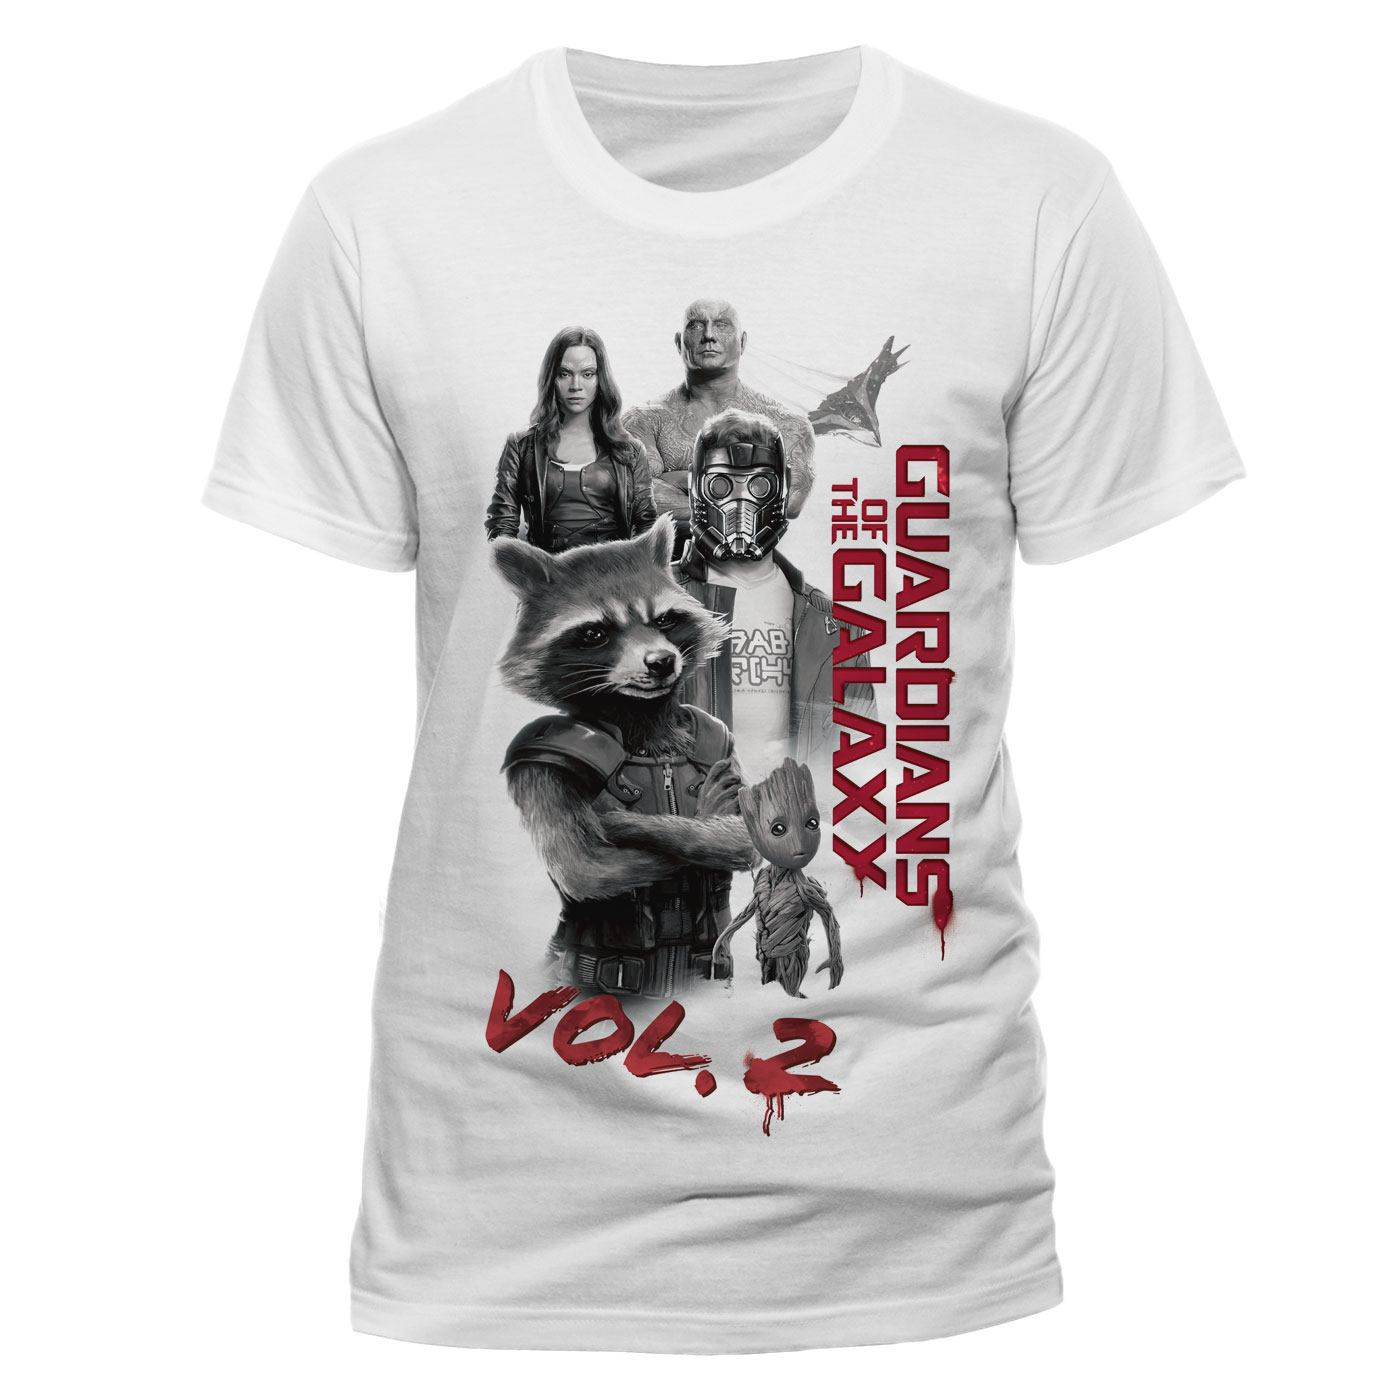 Guardians of the Galaxy 2 T-Shirt Characters Size L